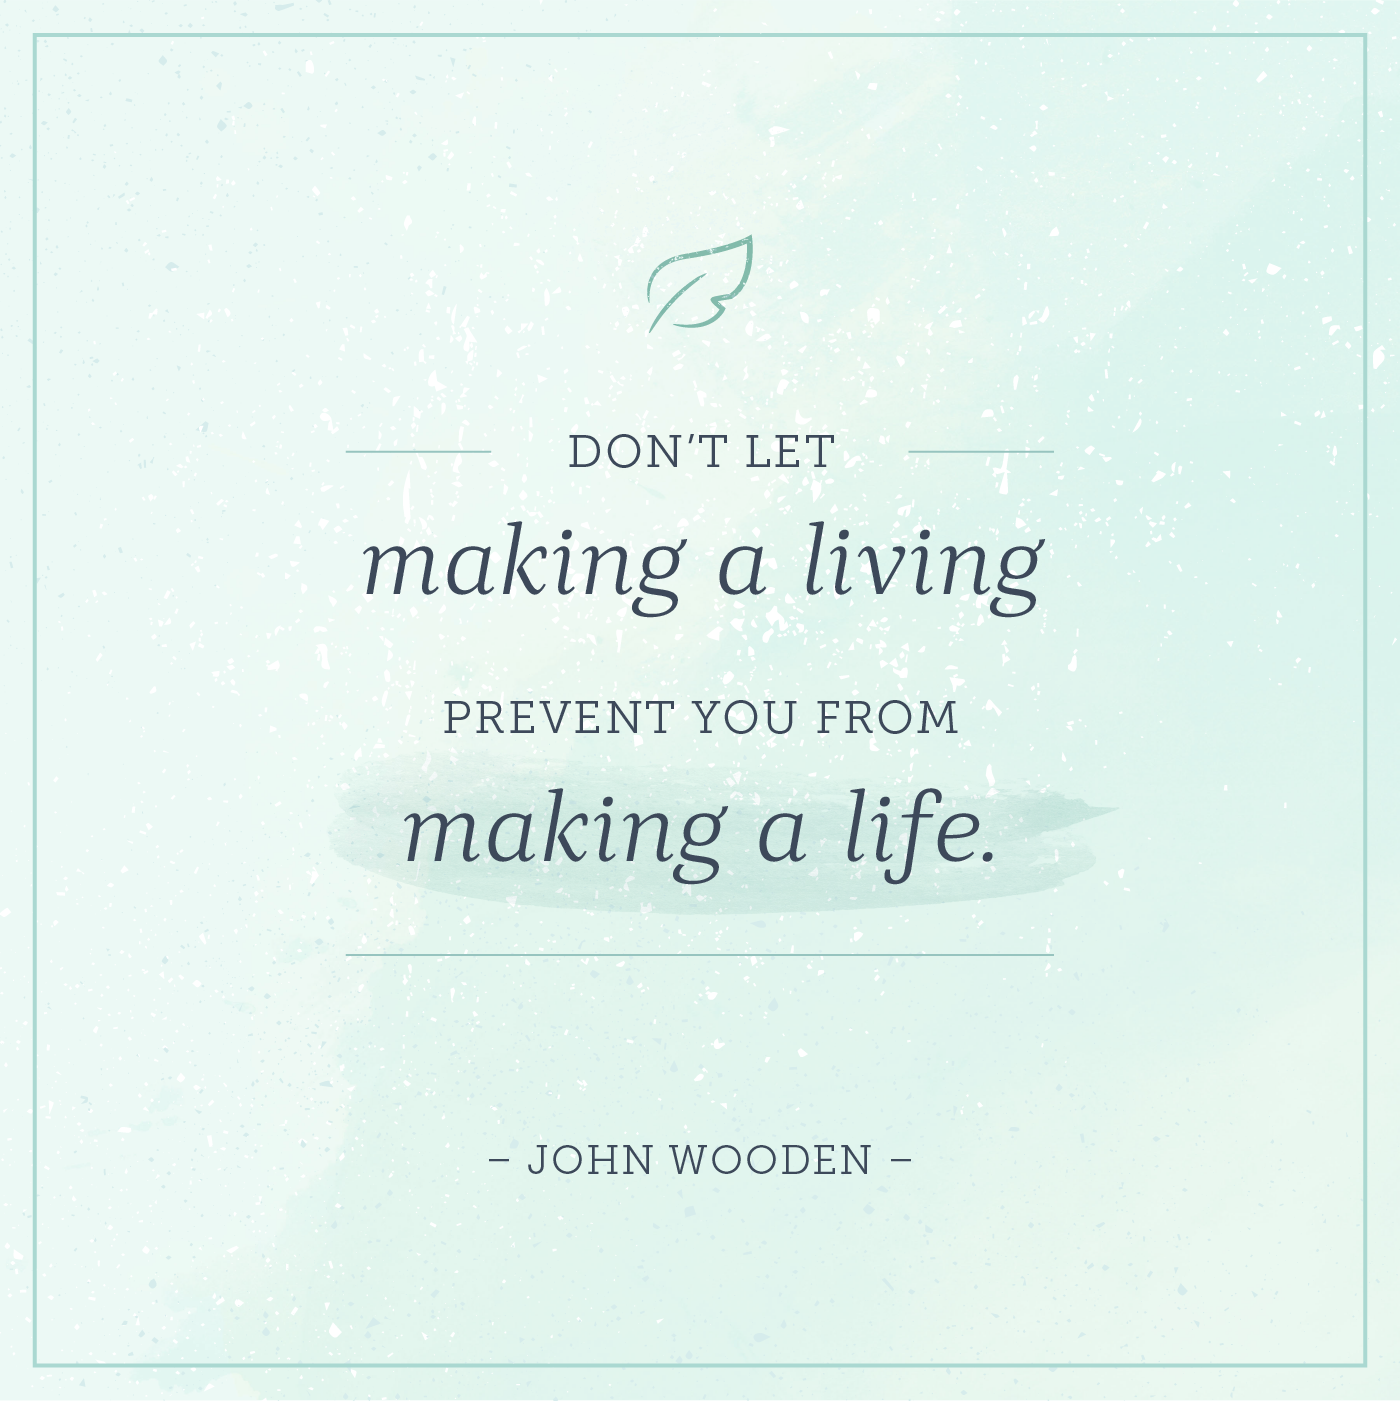 don't let making a living prevent you from making a life